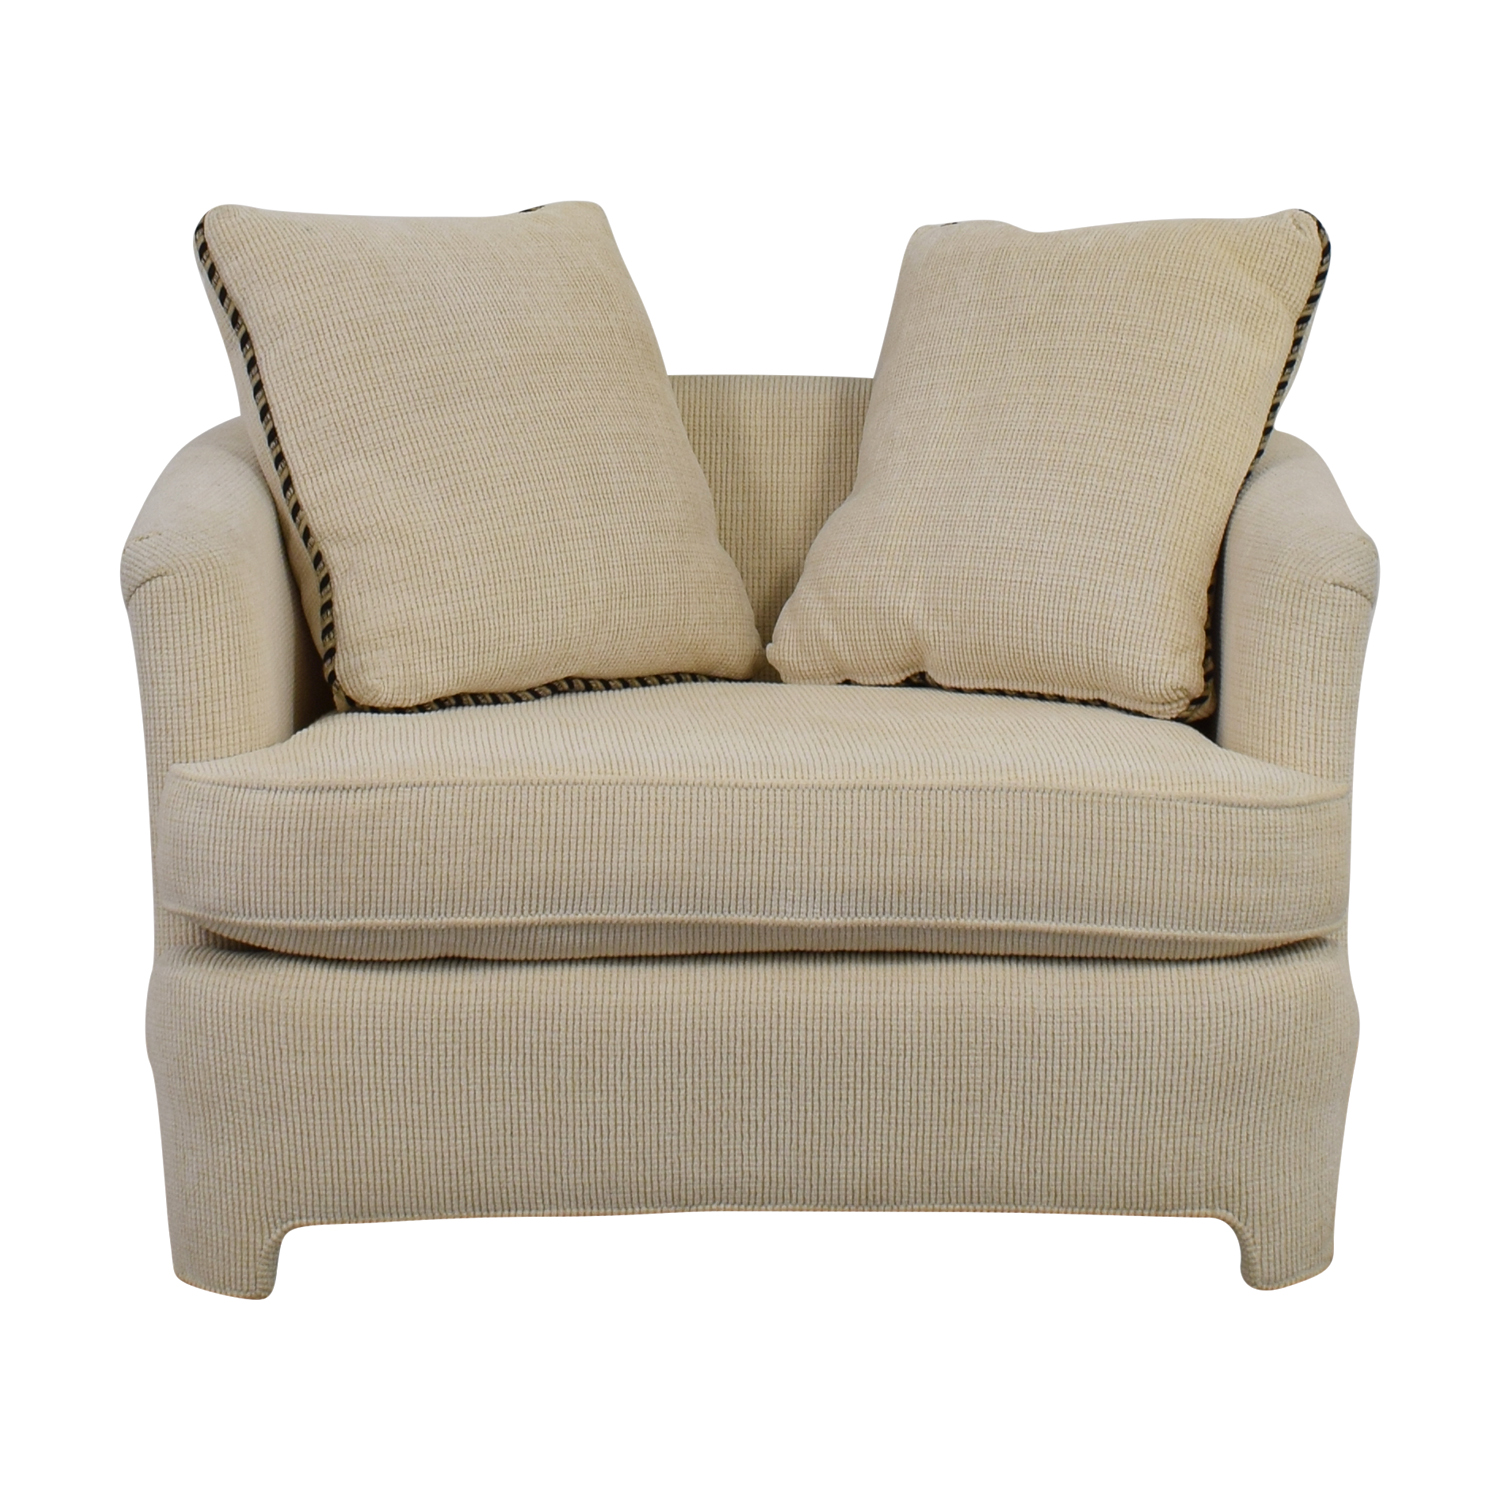 Off White Accent Chair With Pillows Coupon ...